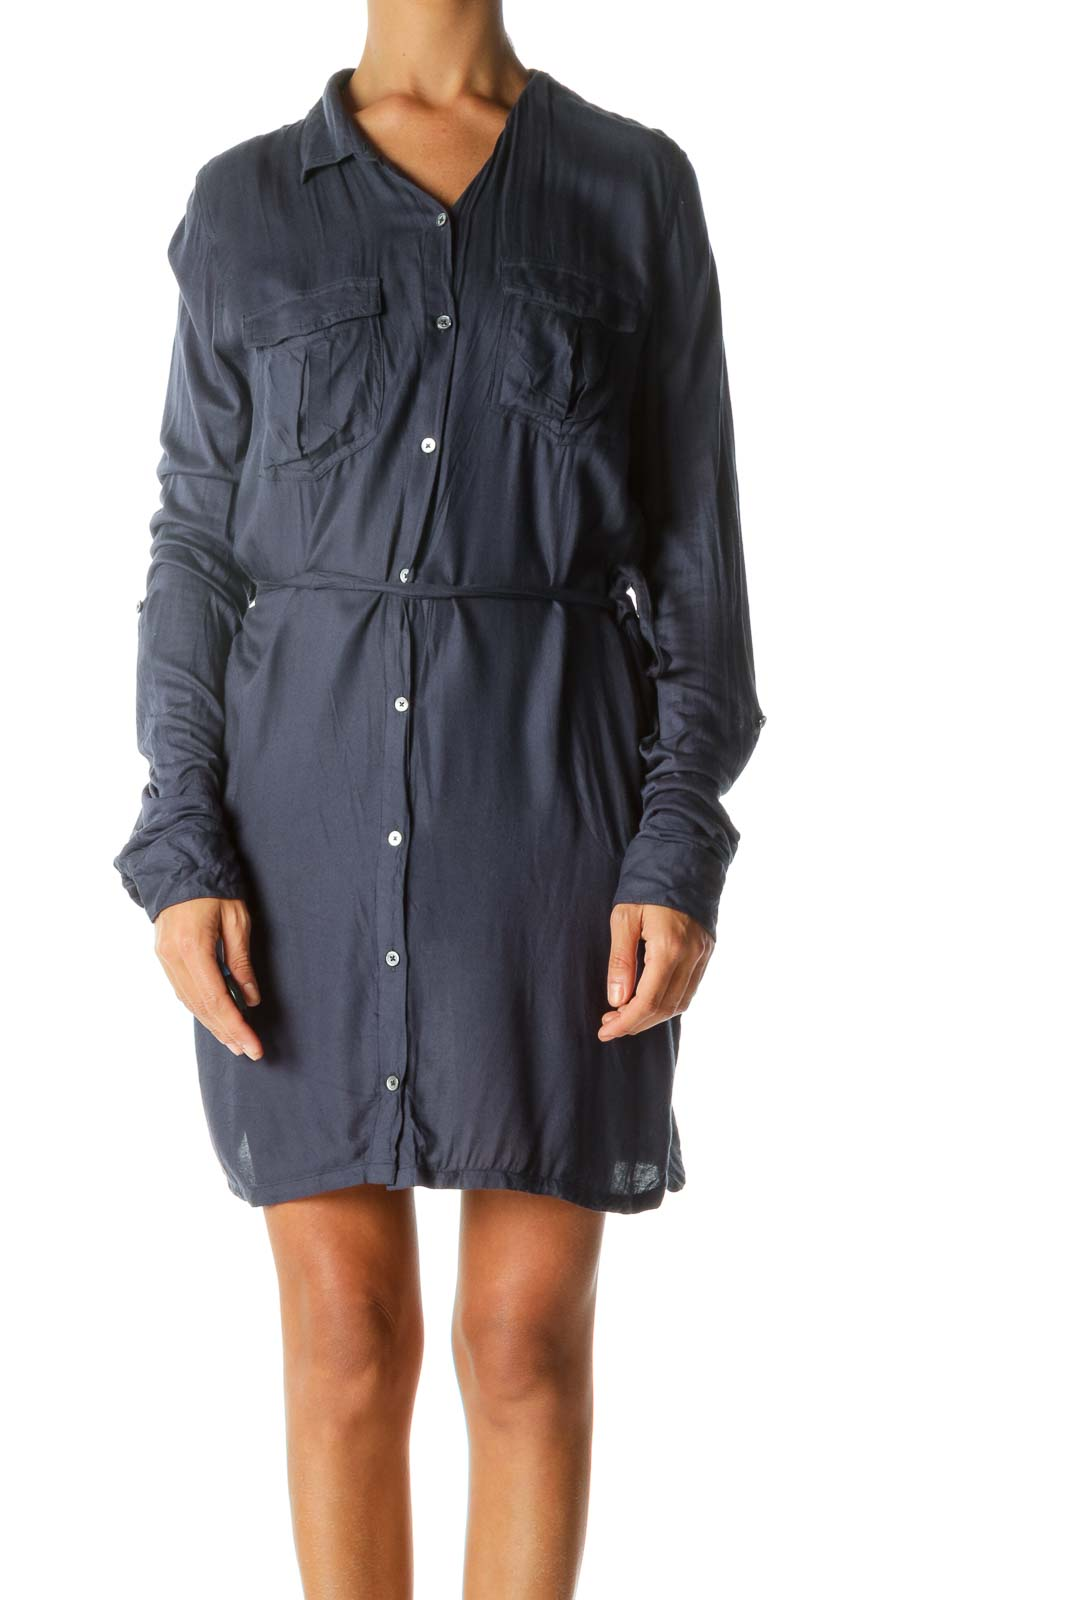 Blue Buttoned Long-Sleeve Belted Knit Light Pocketed Dress Front